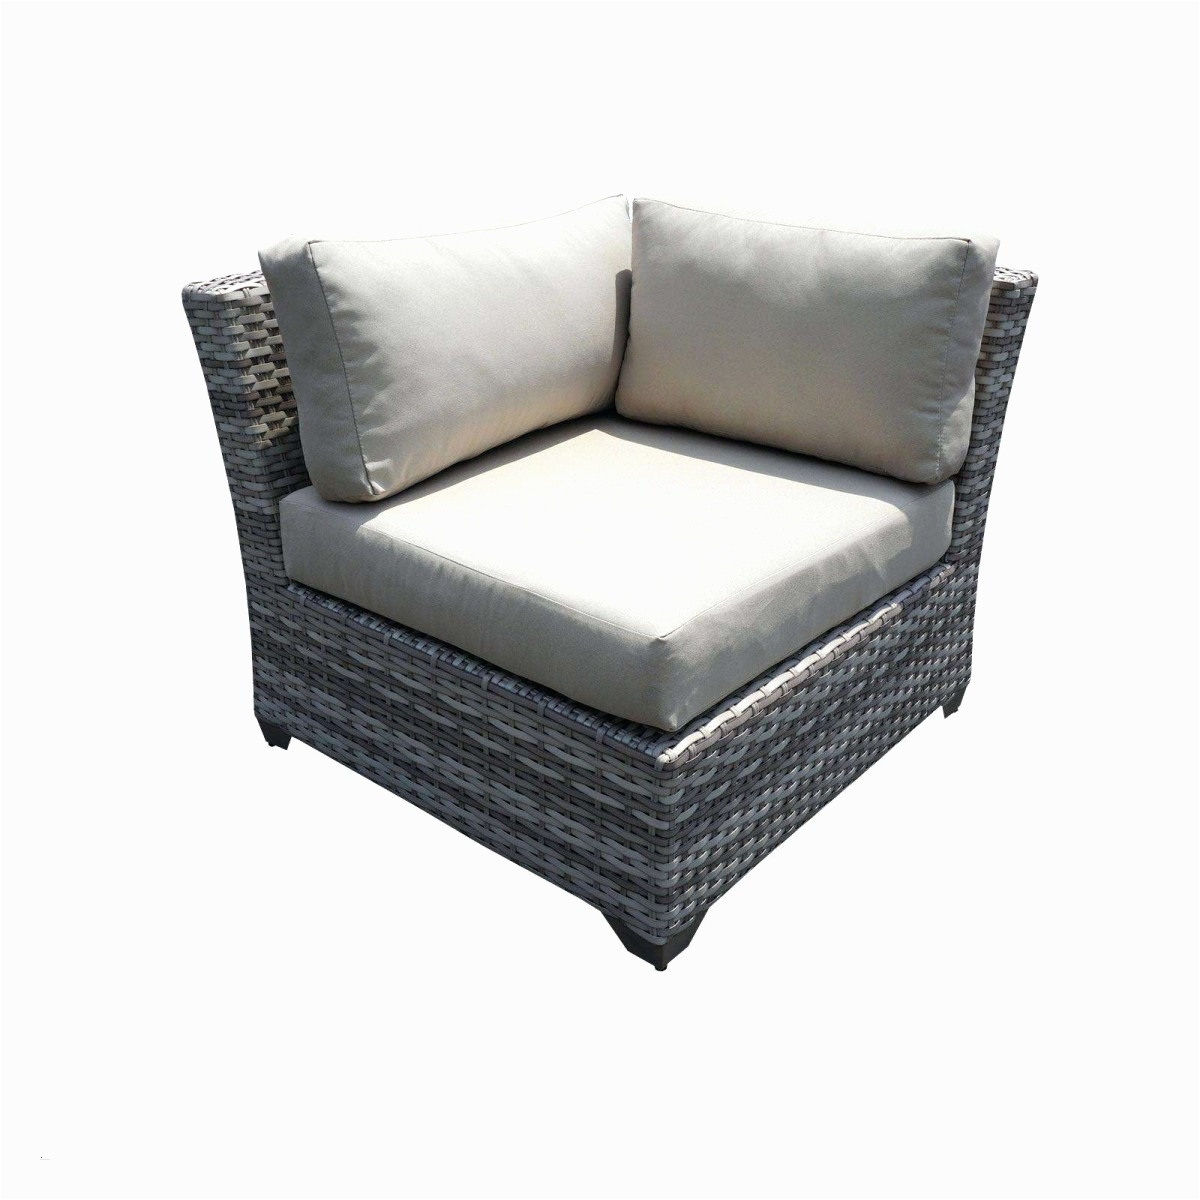 outdoor wrought iron furniture beautiful wrought iron chairs hd wicker outdoor sofa 0d patio chairs sale